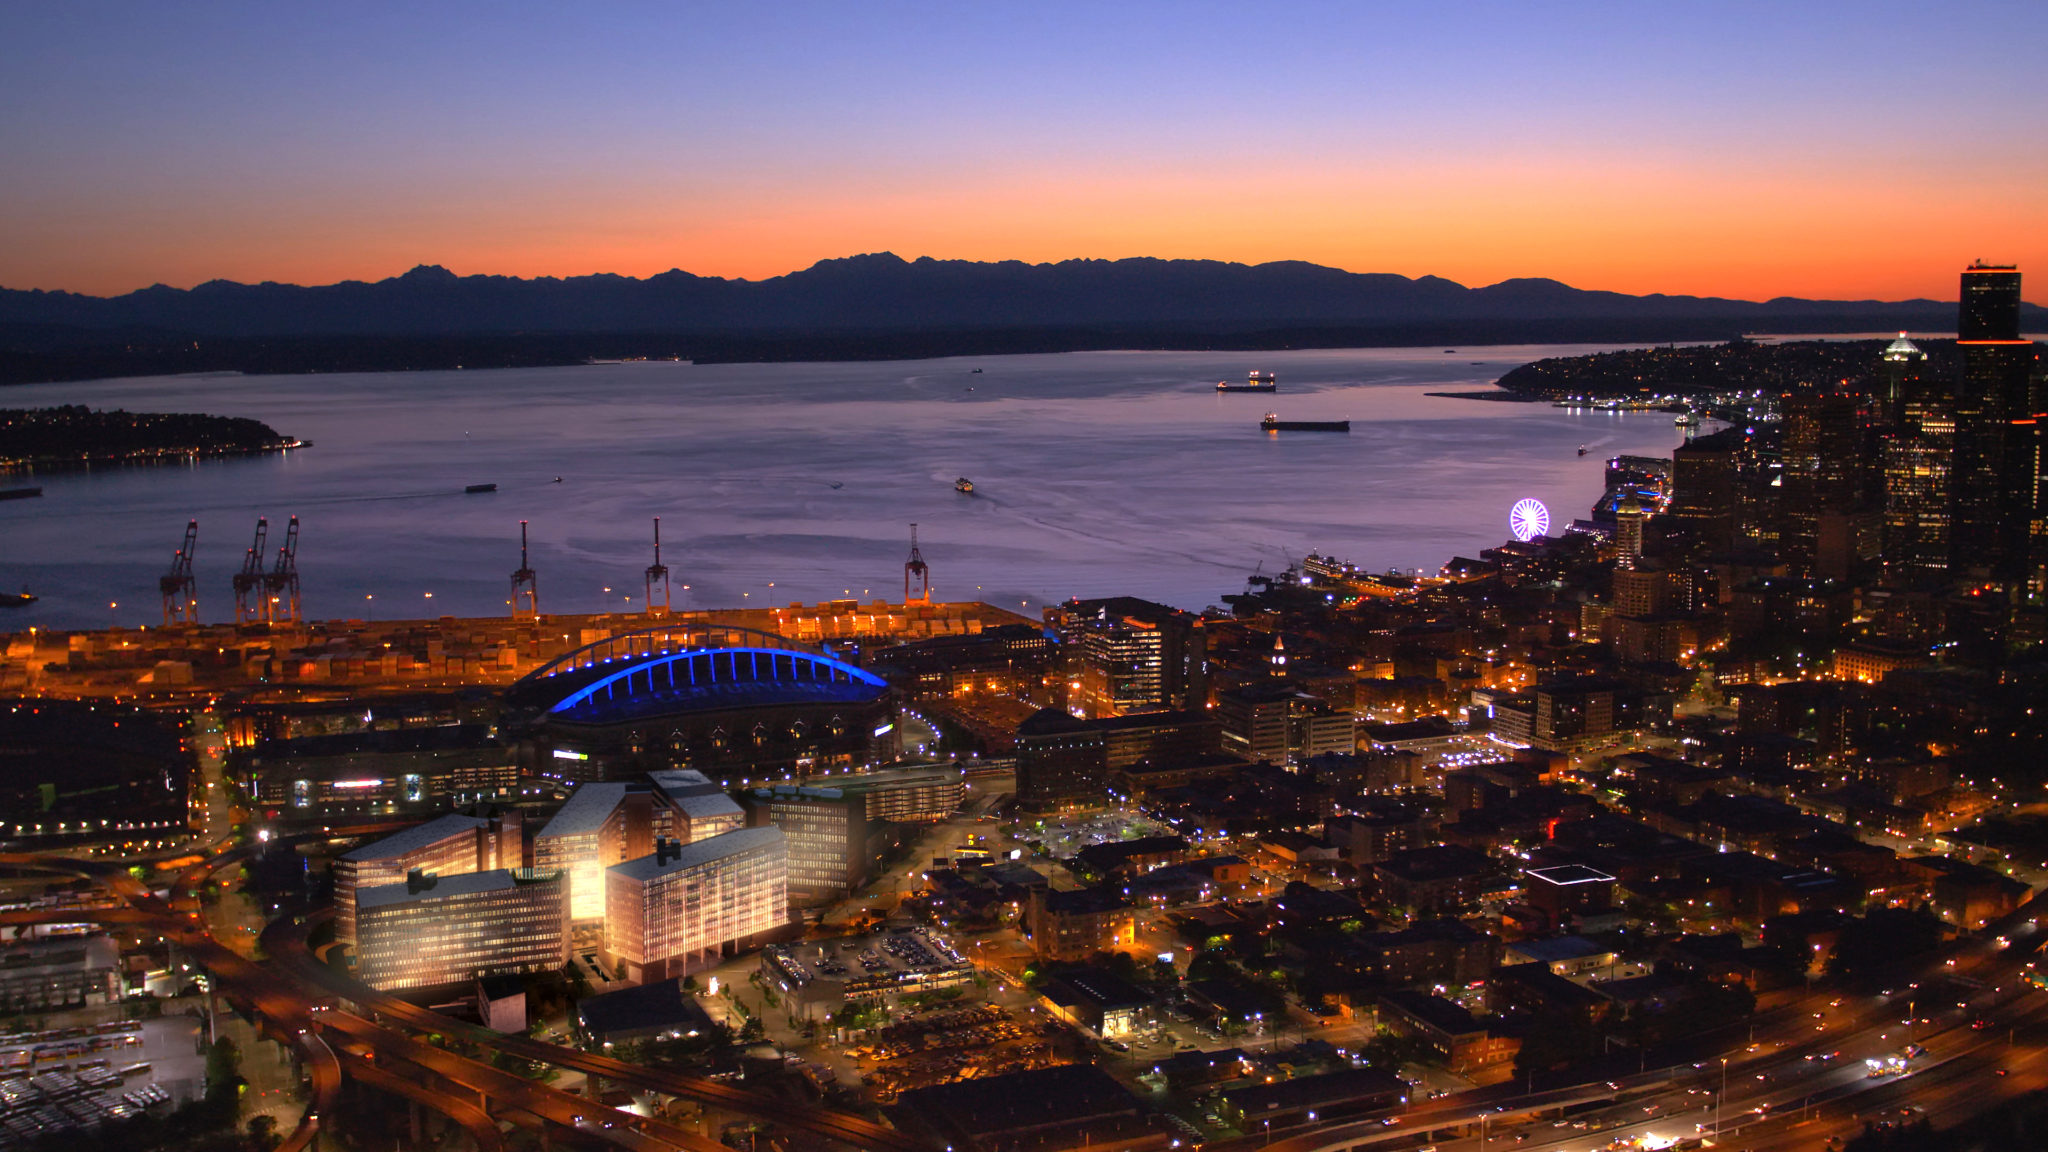 S Seattle Rendering Aerial View at Night